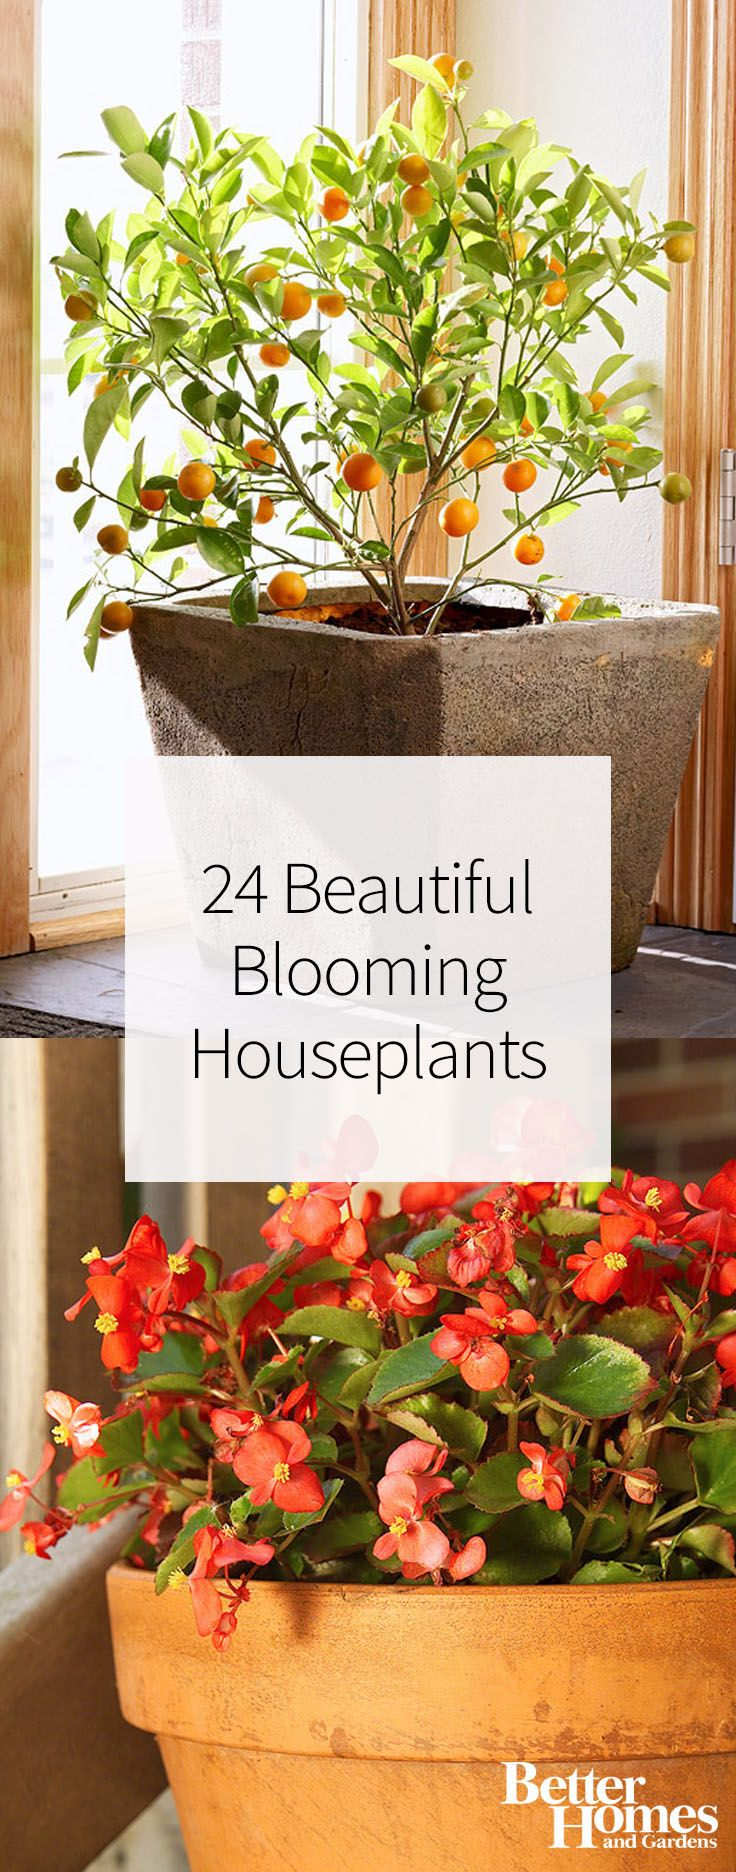 22 of the Most Beautiful Blooming Houseplants You Can Grow is part of Planting flowers, Plants, Indoor flowers, Indoor plants, Growing indoors, Houseplants - As much as we enjoy our houseplants for their pretty leaves alone, it can feel like a truly momentous occasion when flowers appear  Here are some of our favorites for adding extra color and even fragrance to our indoor gardens